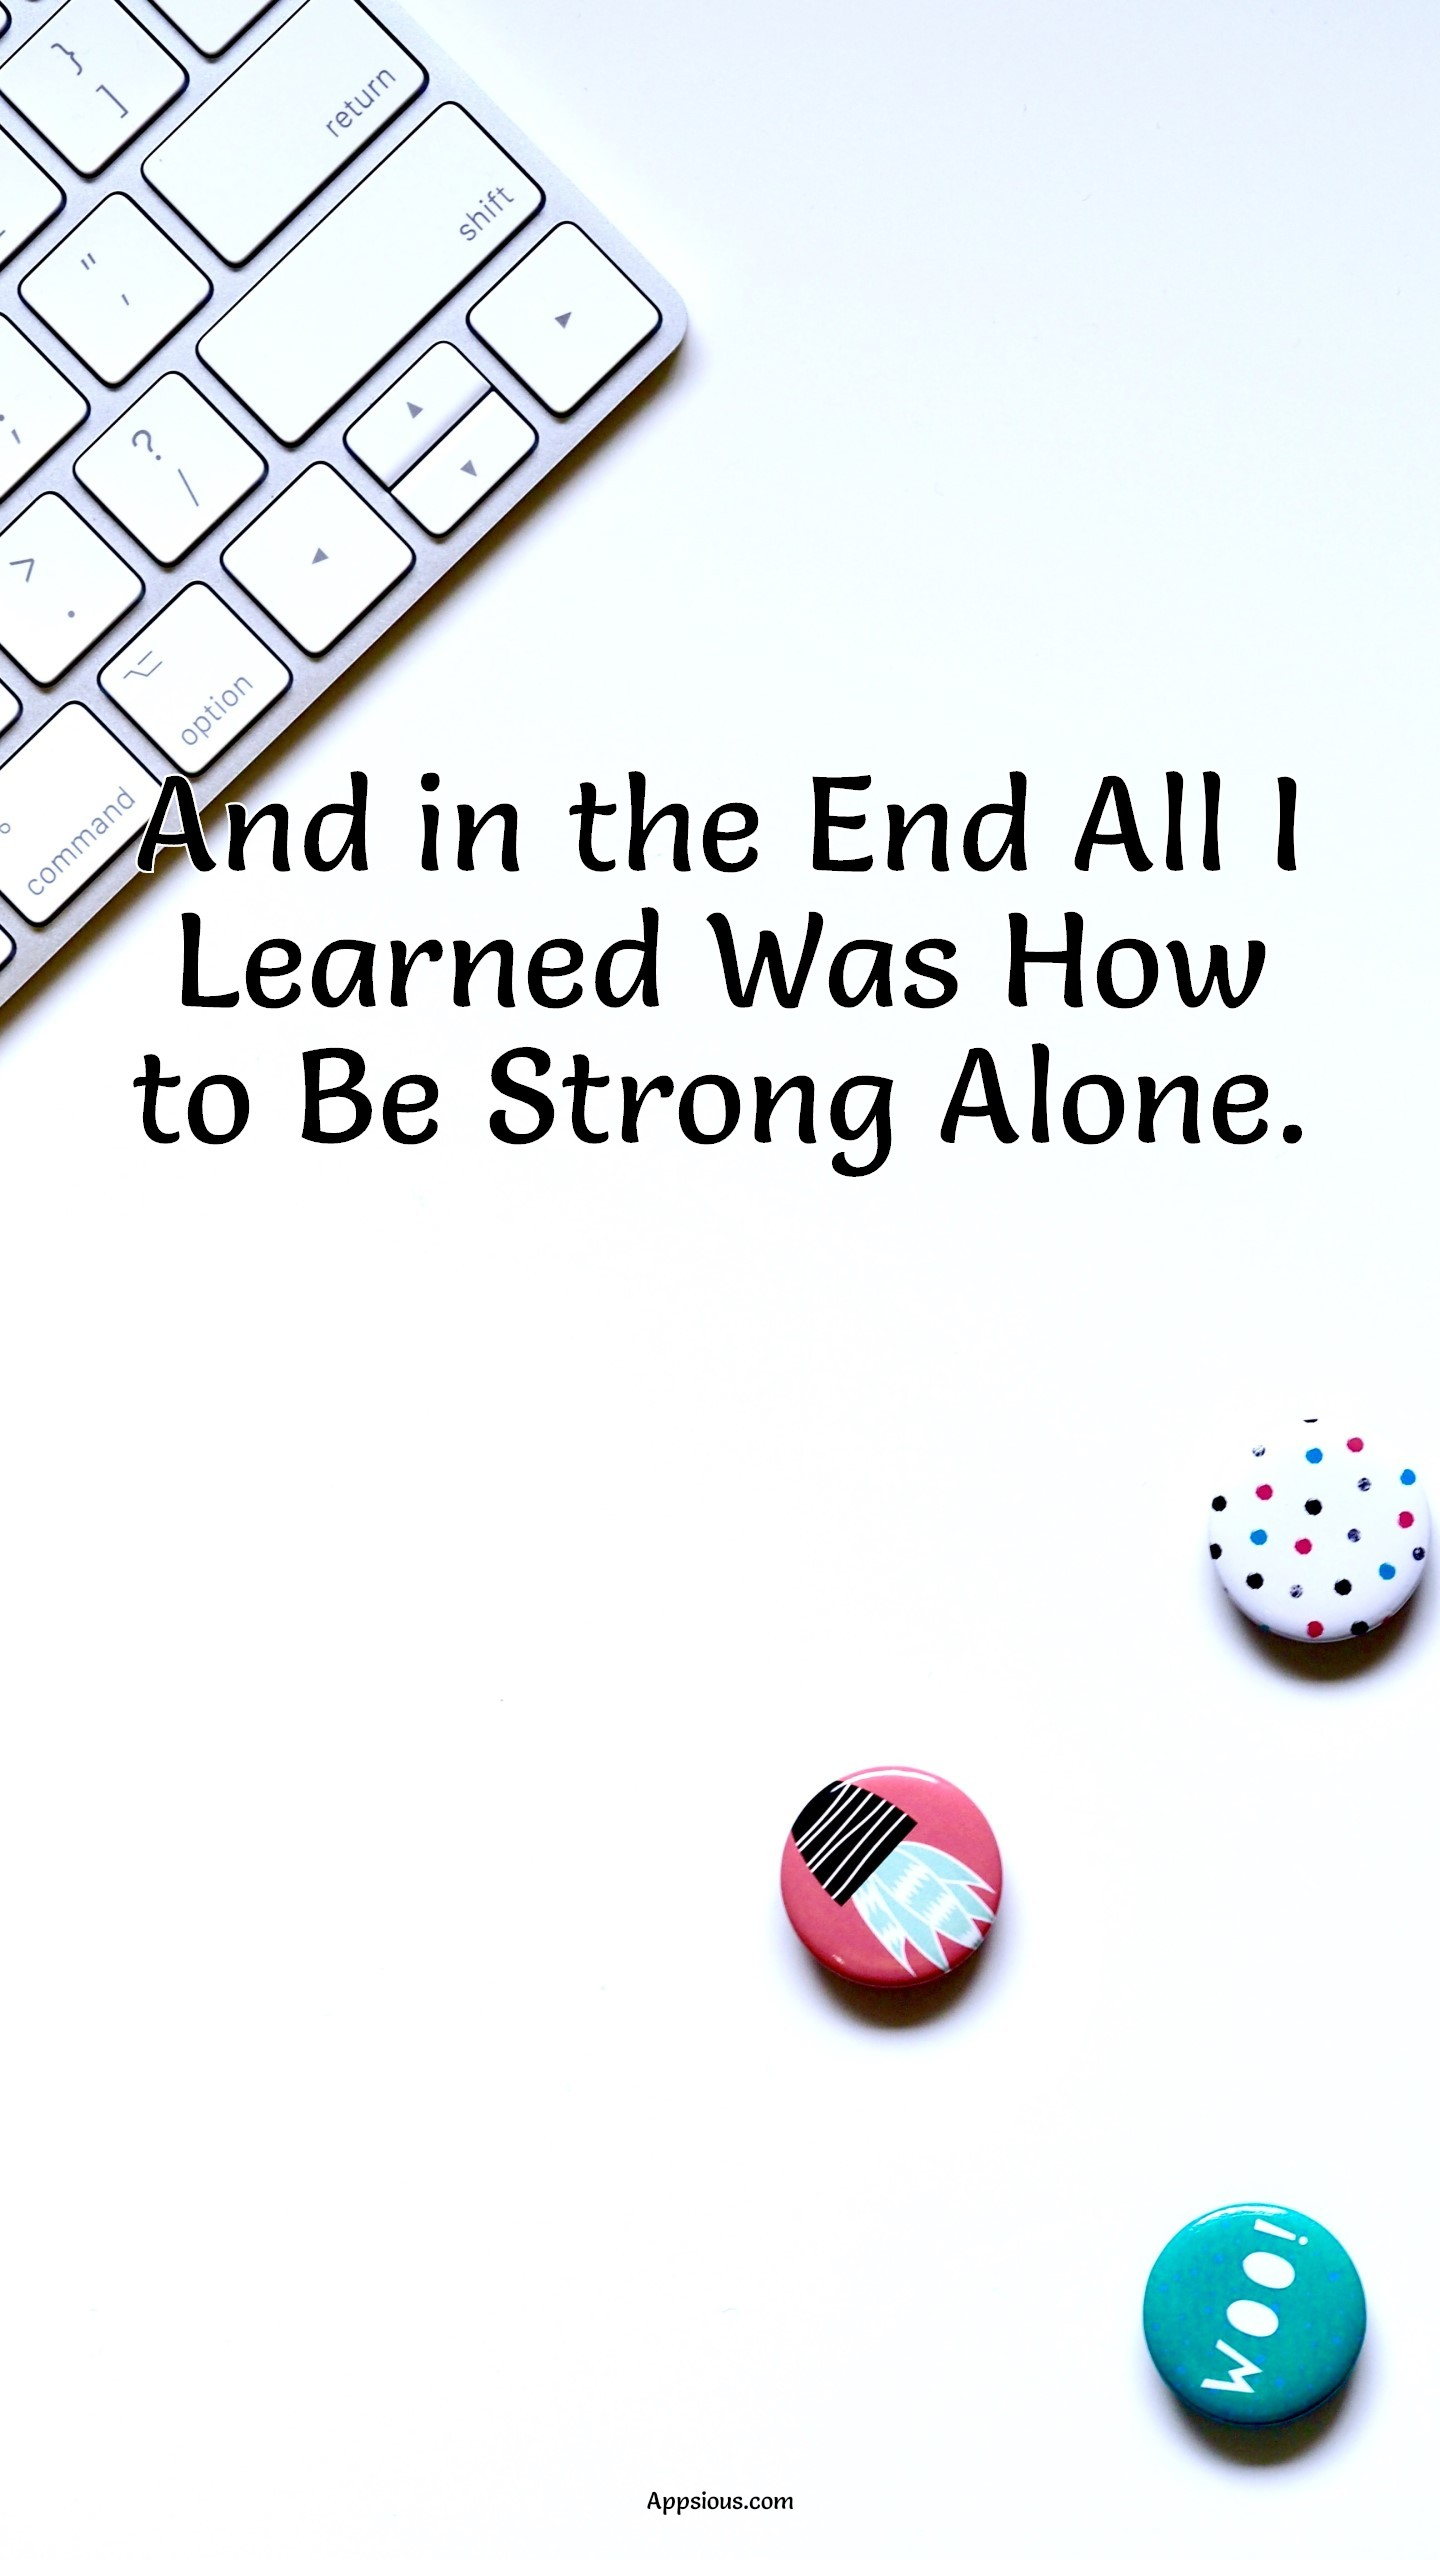 And in the End All I Learned Was How to Be Strong Alone.